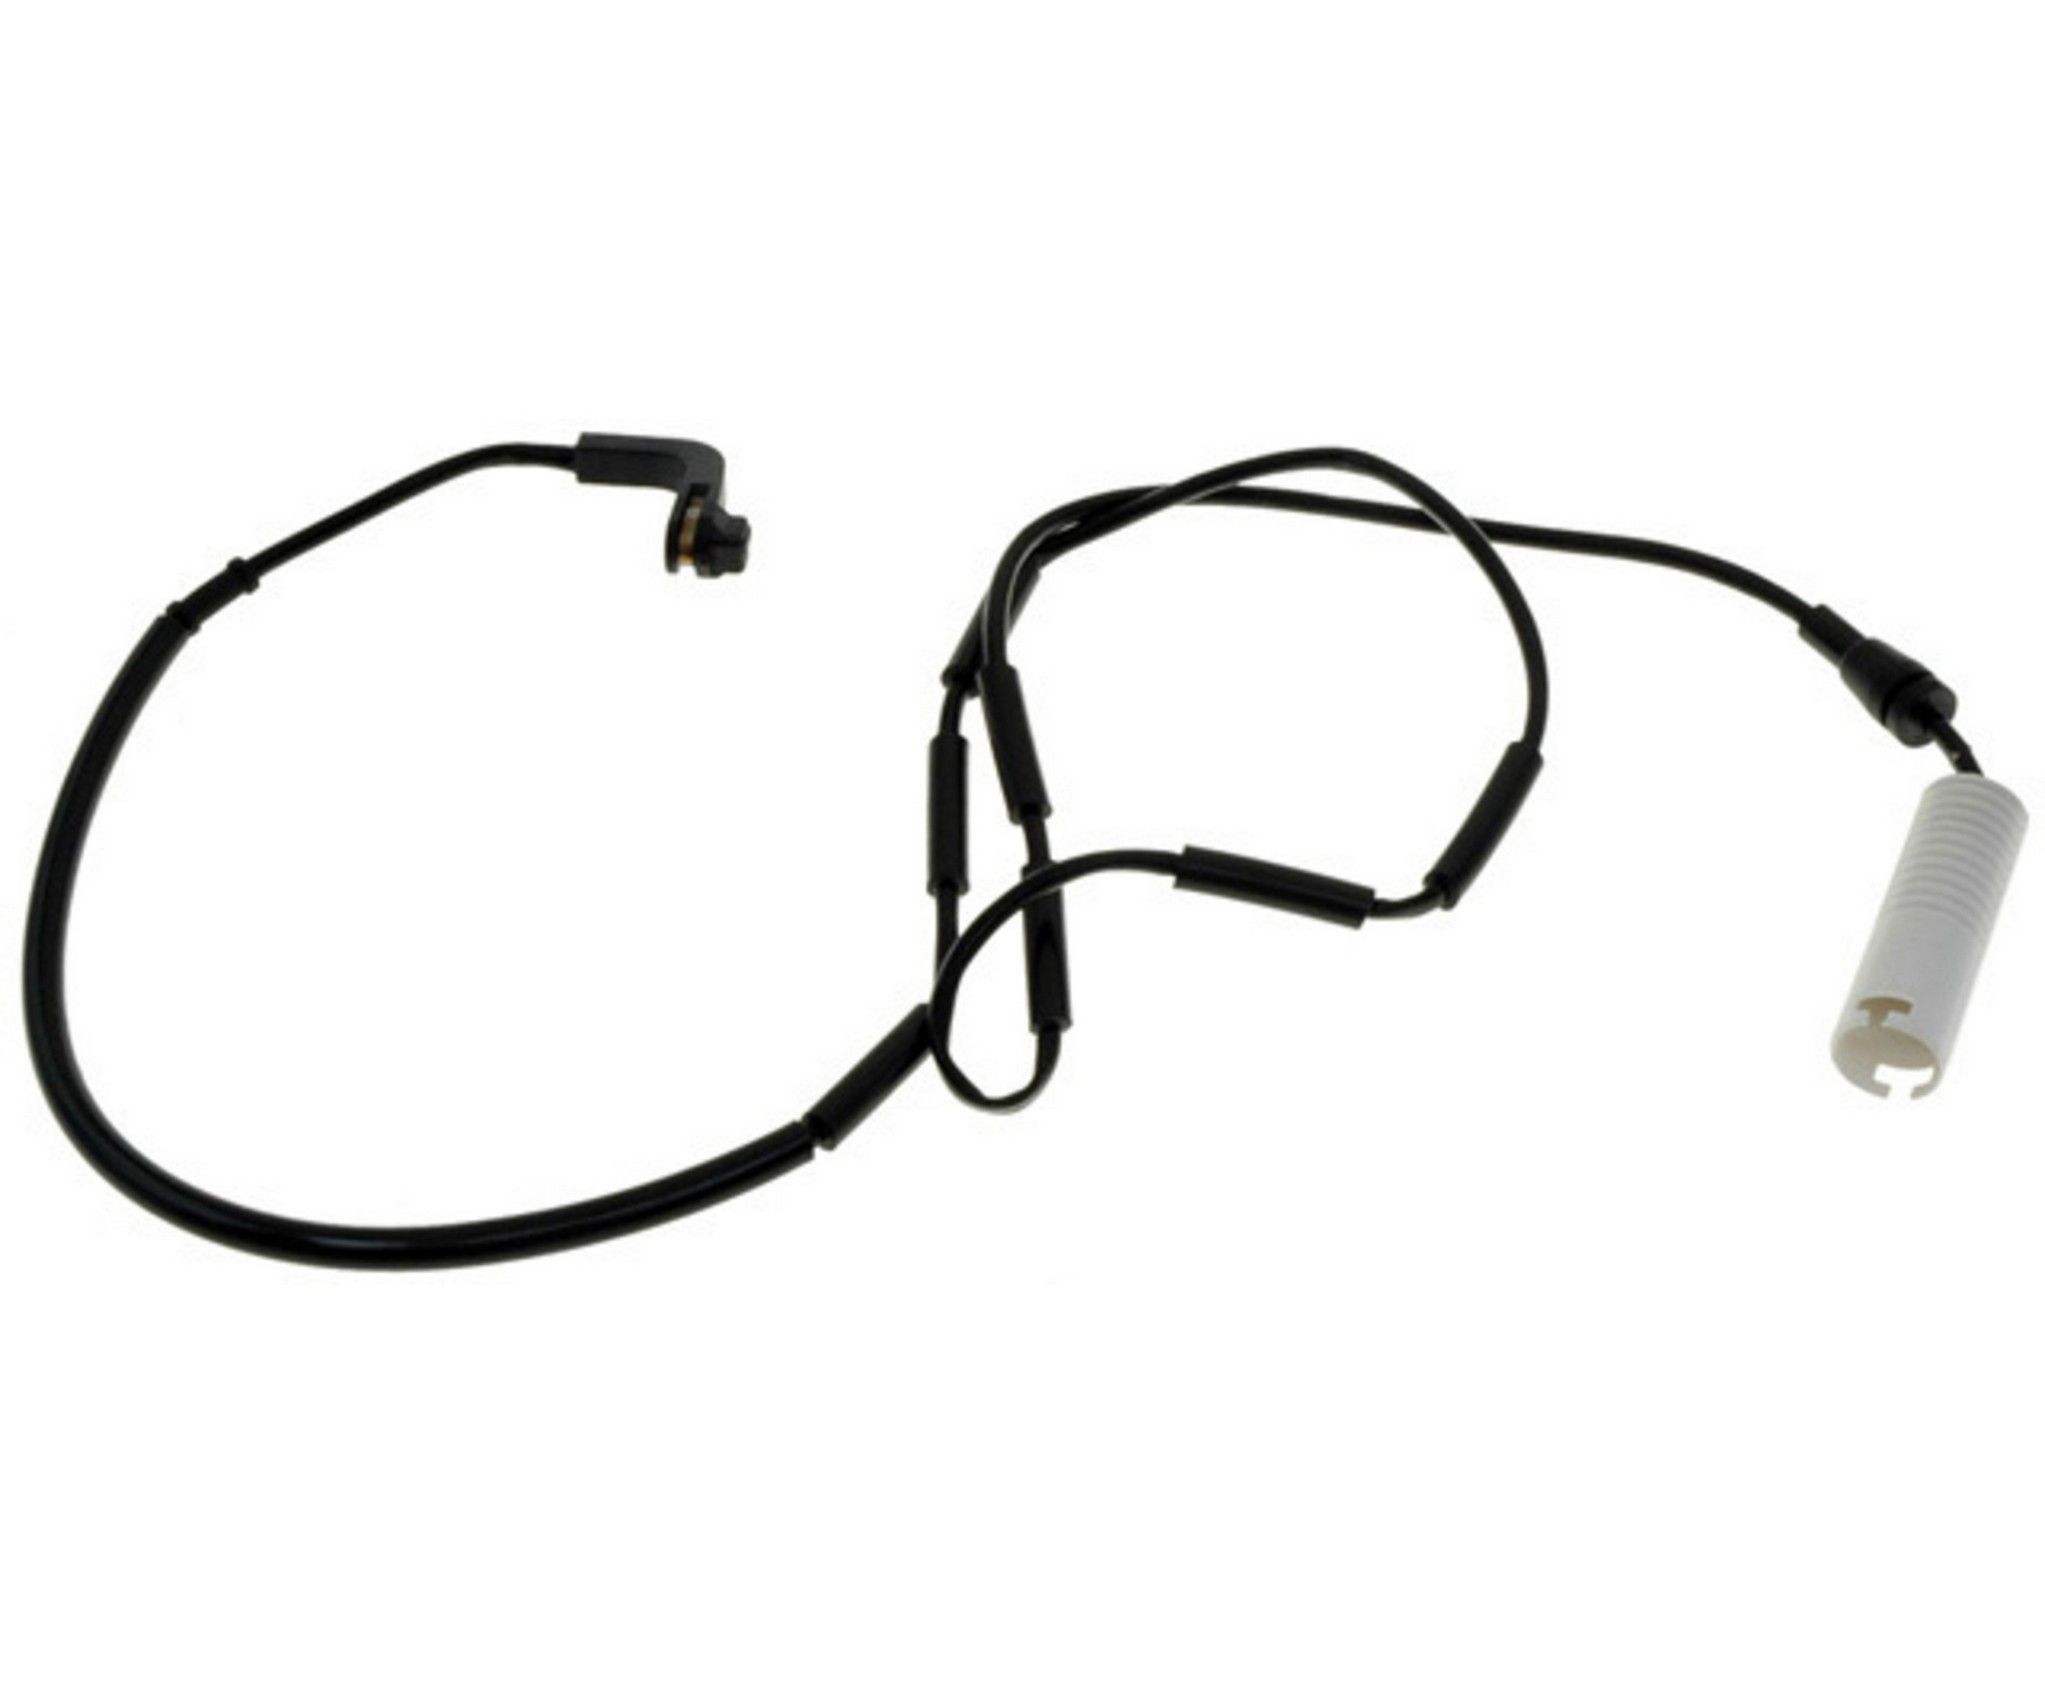 Bmw 328i Disc Brake Pad Wear Sensor Replacement Beck Arnley Bowa